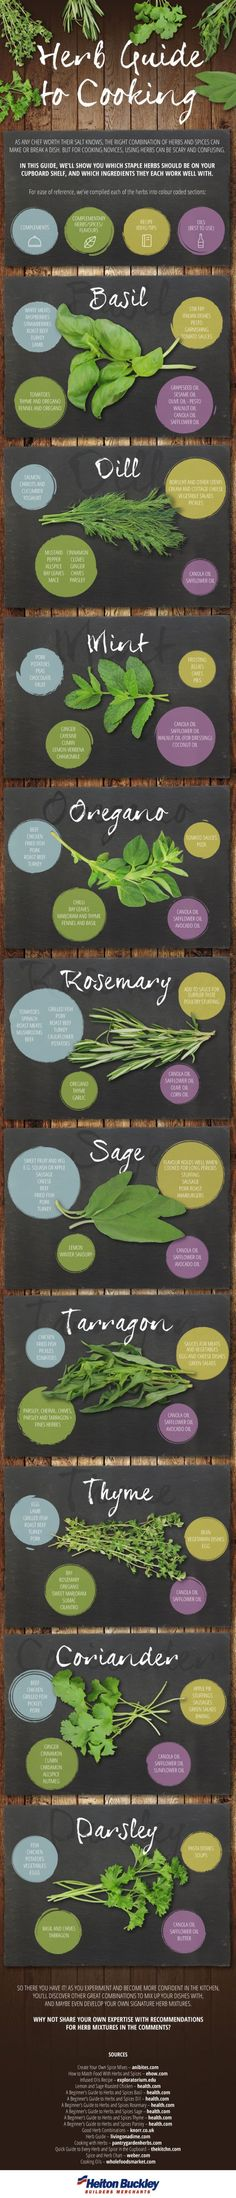 How to Best Use Herbs in Your Cooking #Infographic #Cooking #Herbs